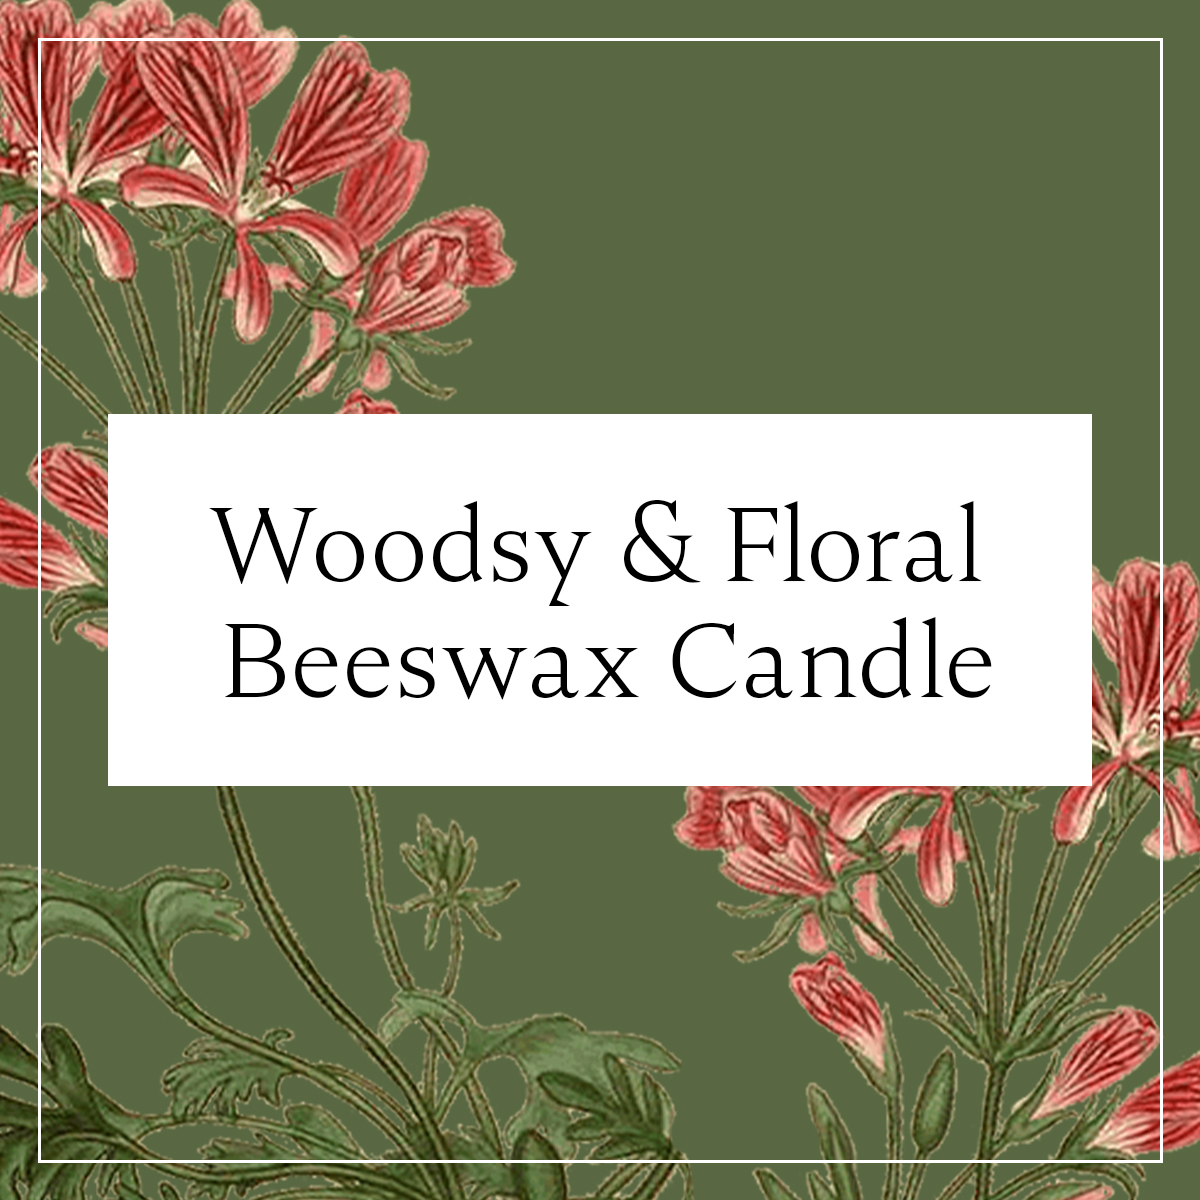 How To Make Natural Beeswax Candles with Essential Oils